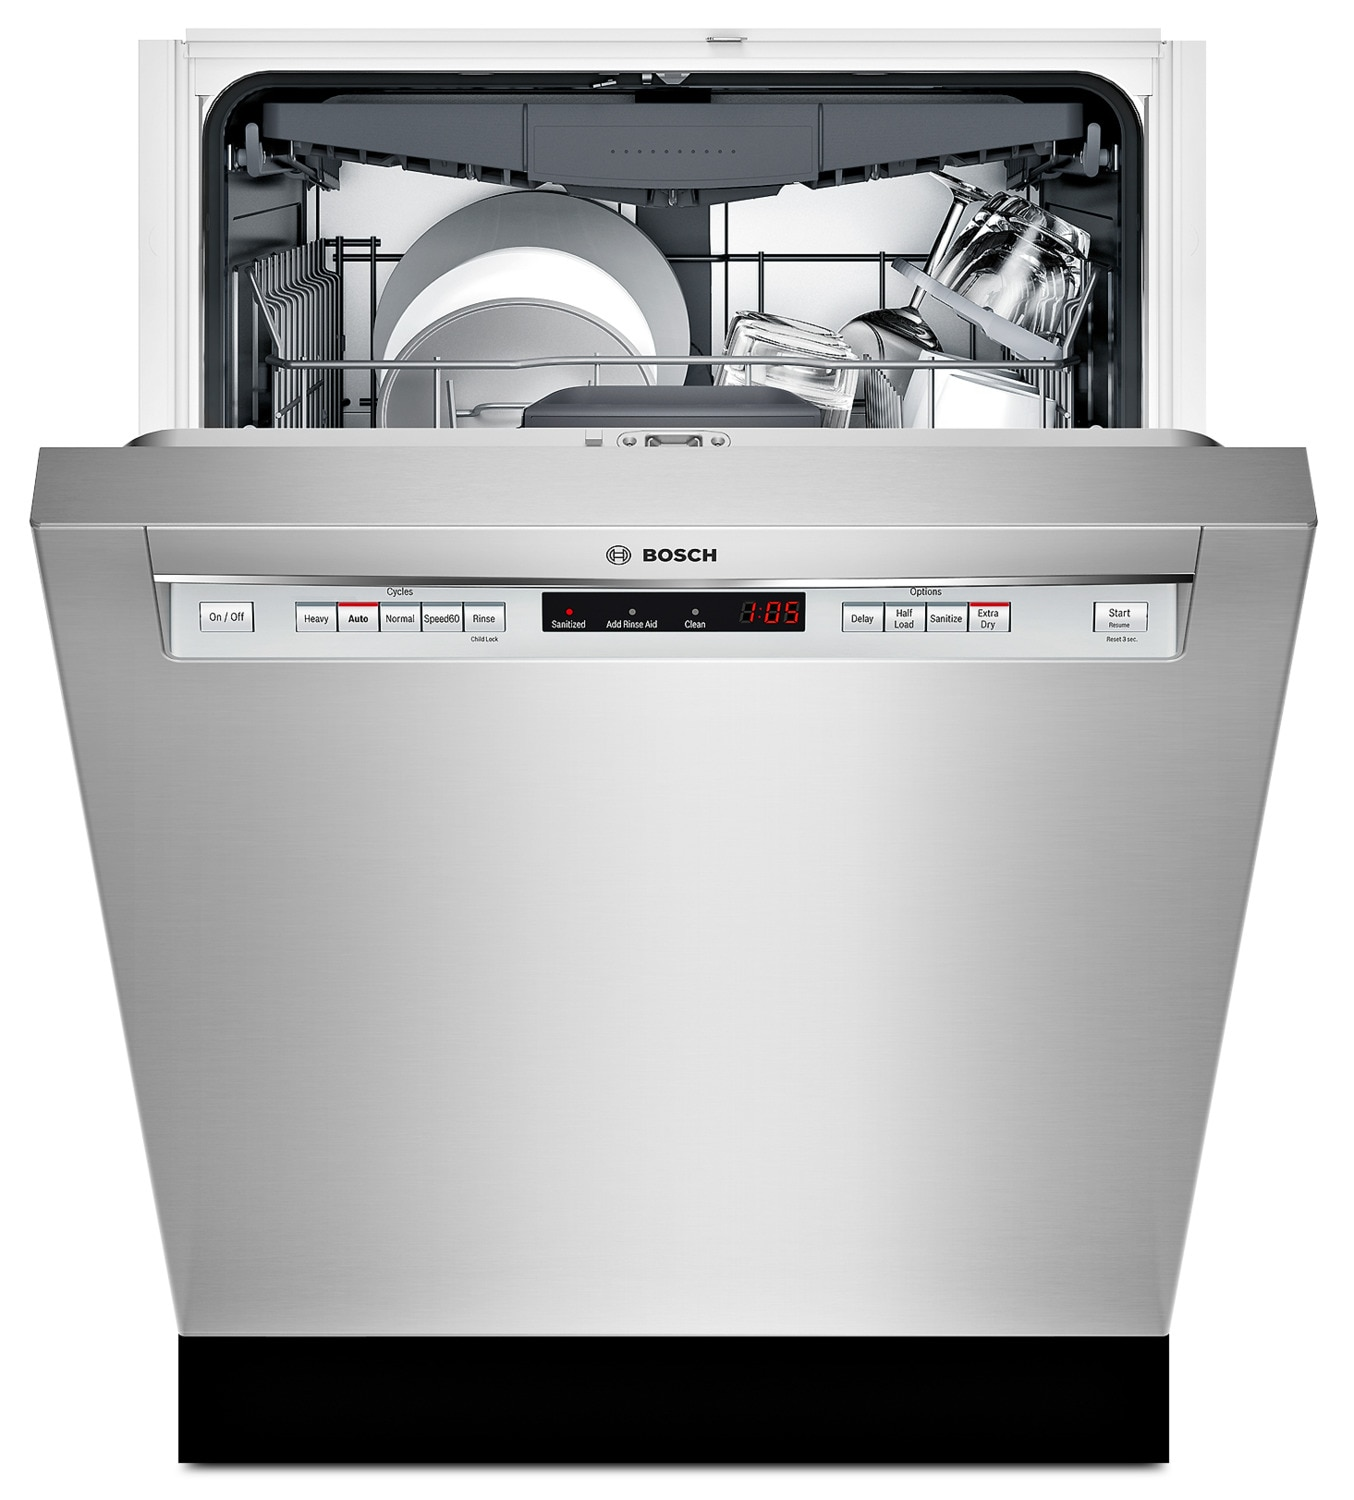 Bosch Home Appliances Price List